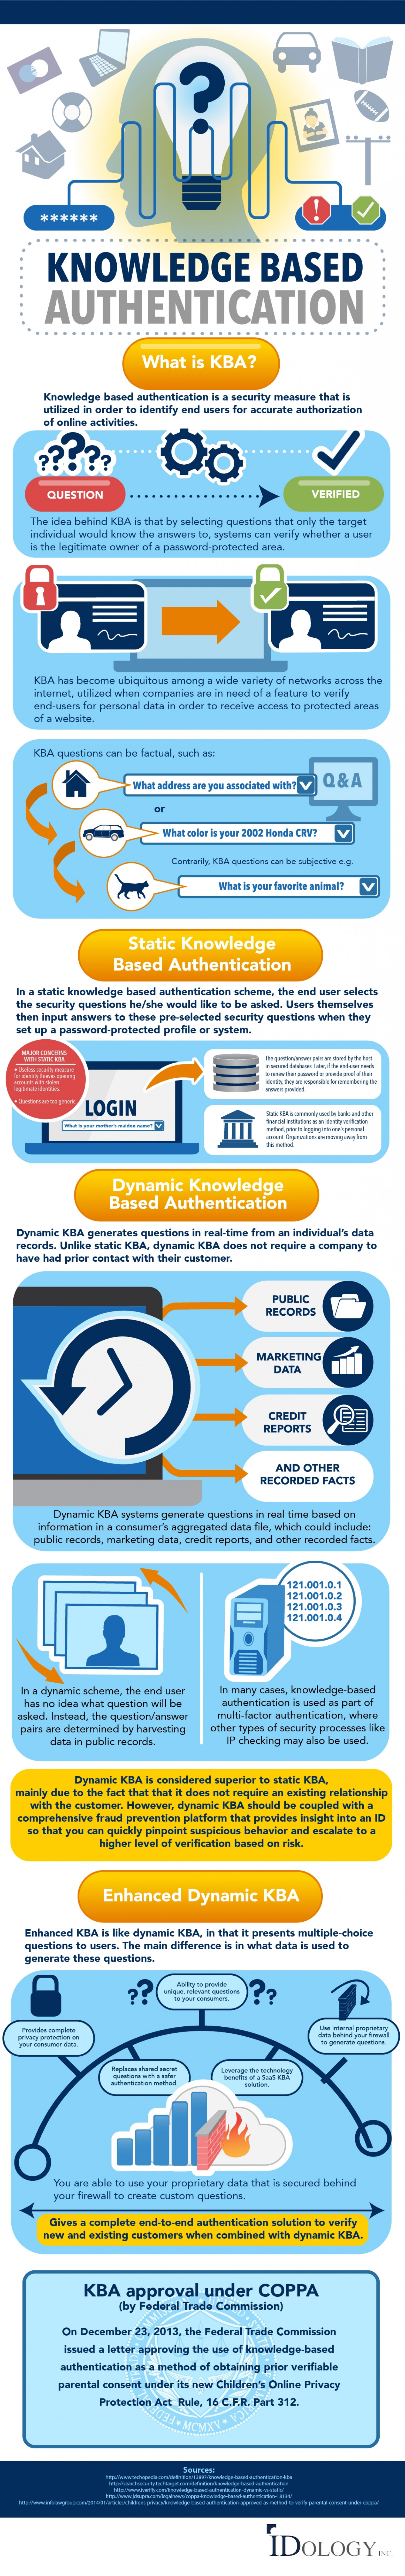 Knowledge Based Authentication Infographic